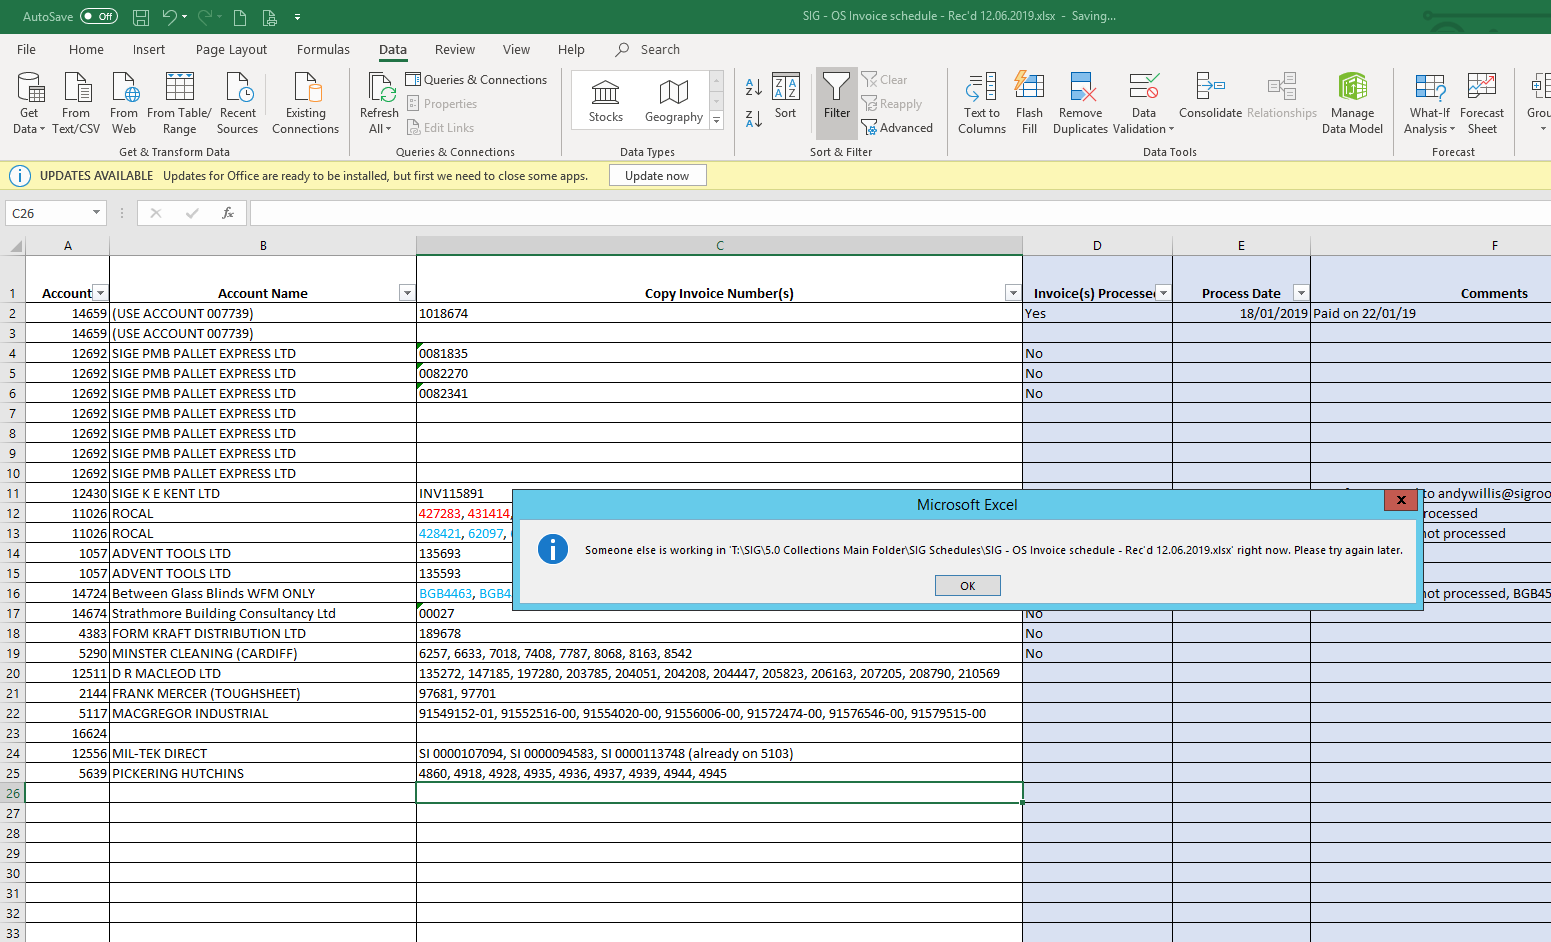 Excel Error: Someone else is working on file right now. Please try again later